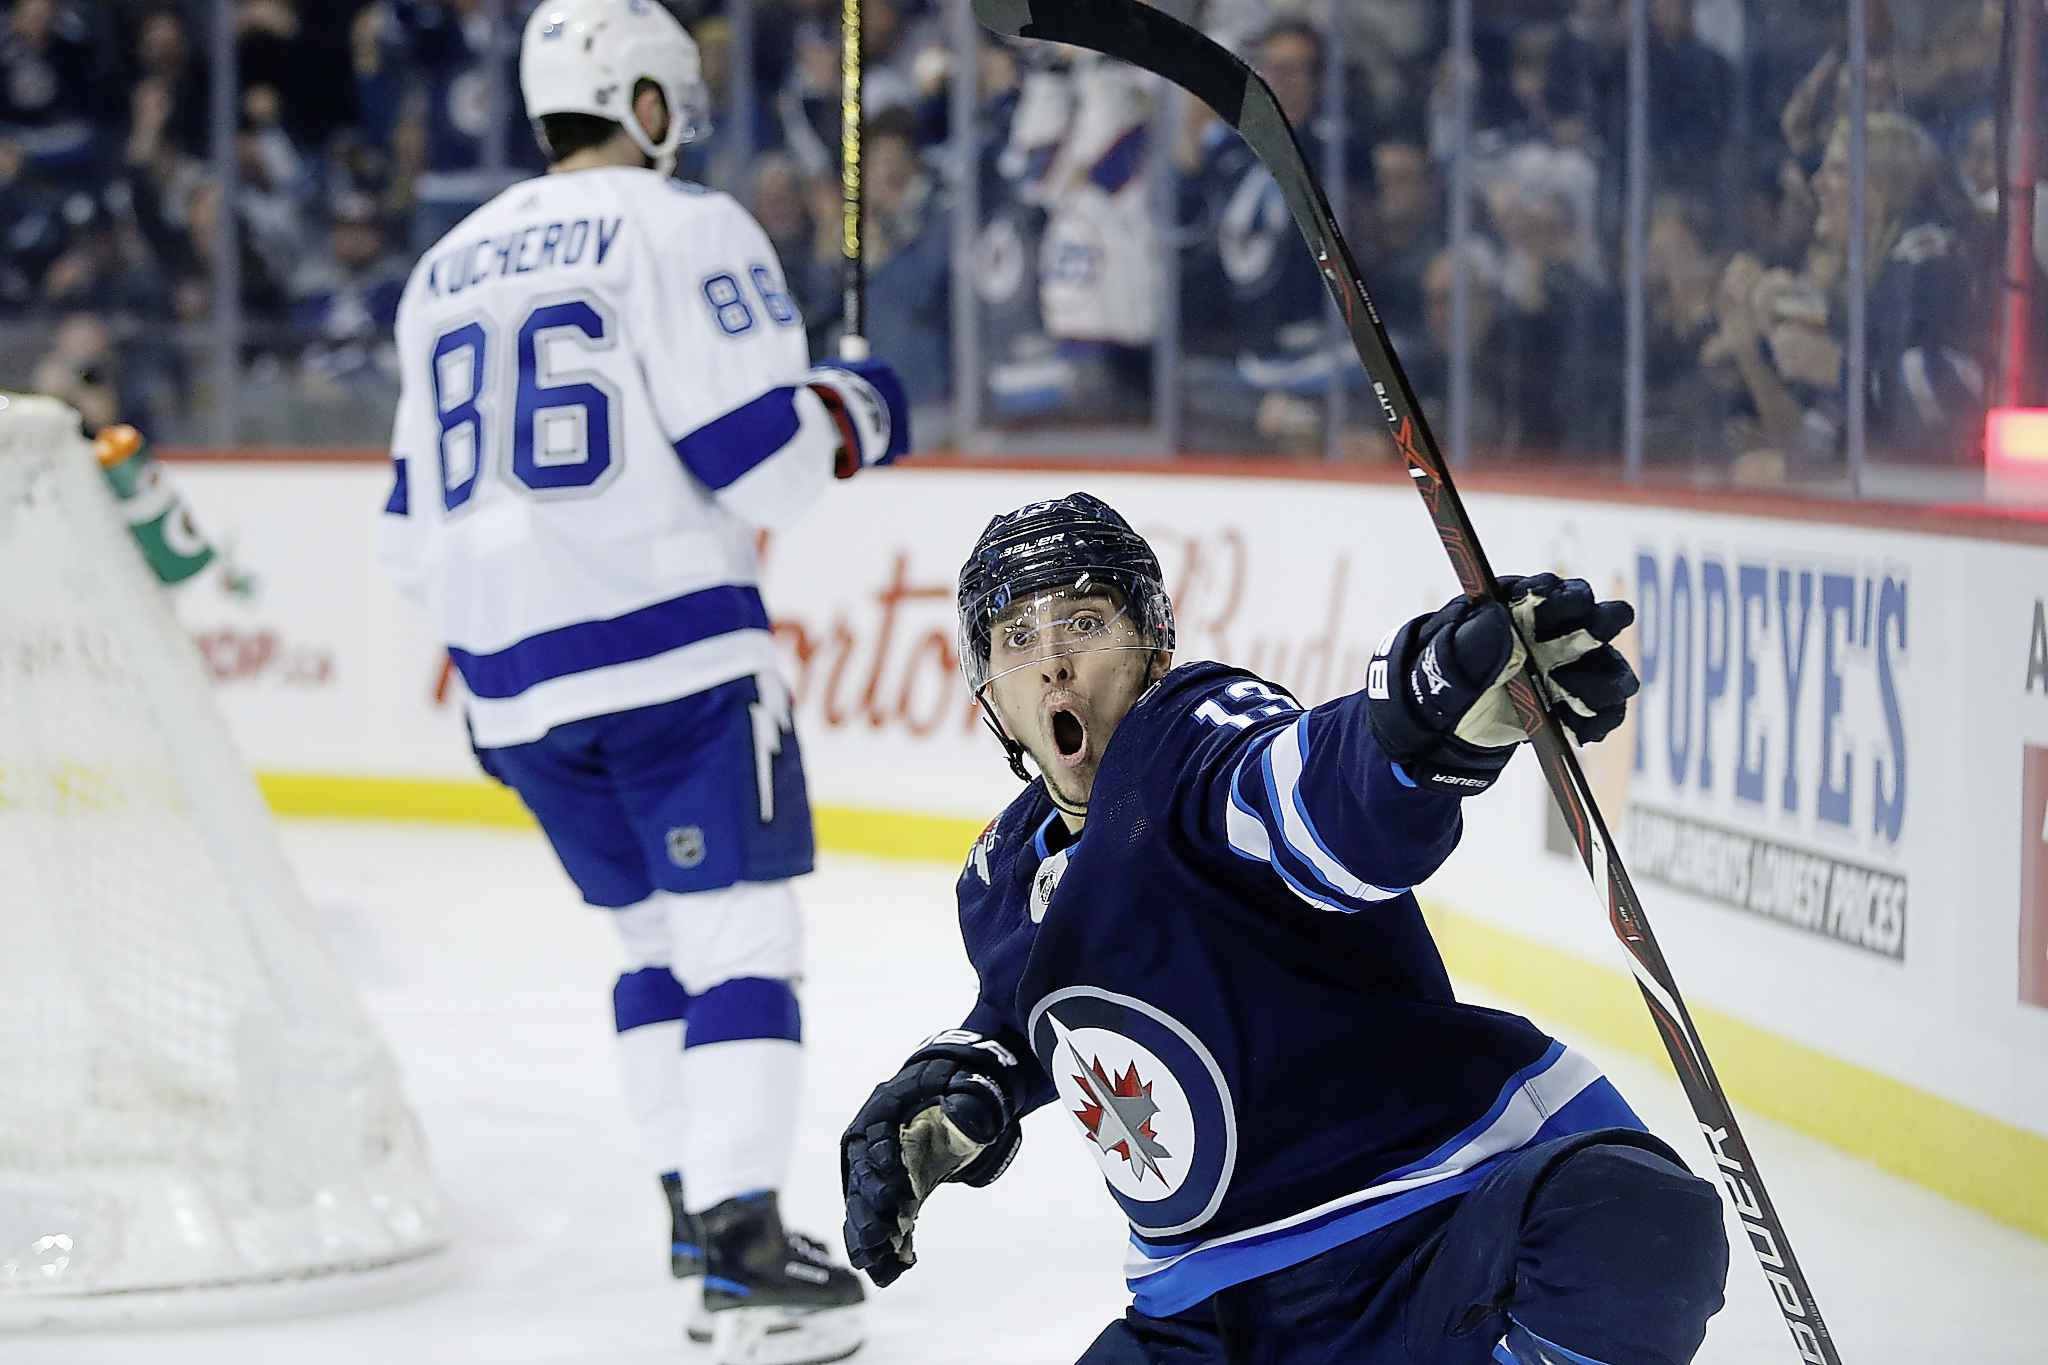 Only four Jets skaters have more goals this season than the career-high nine scored by Tanev. (John Woods / The Canadian Press)